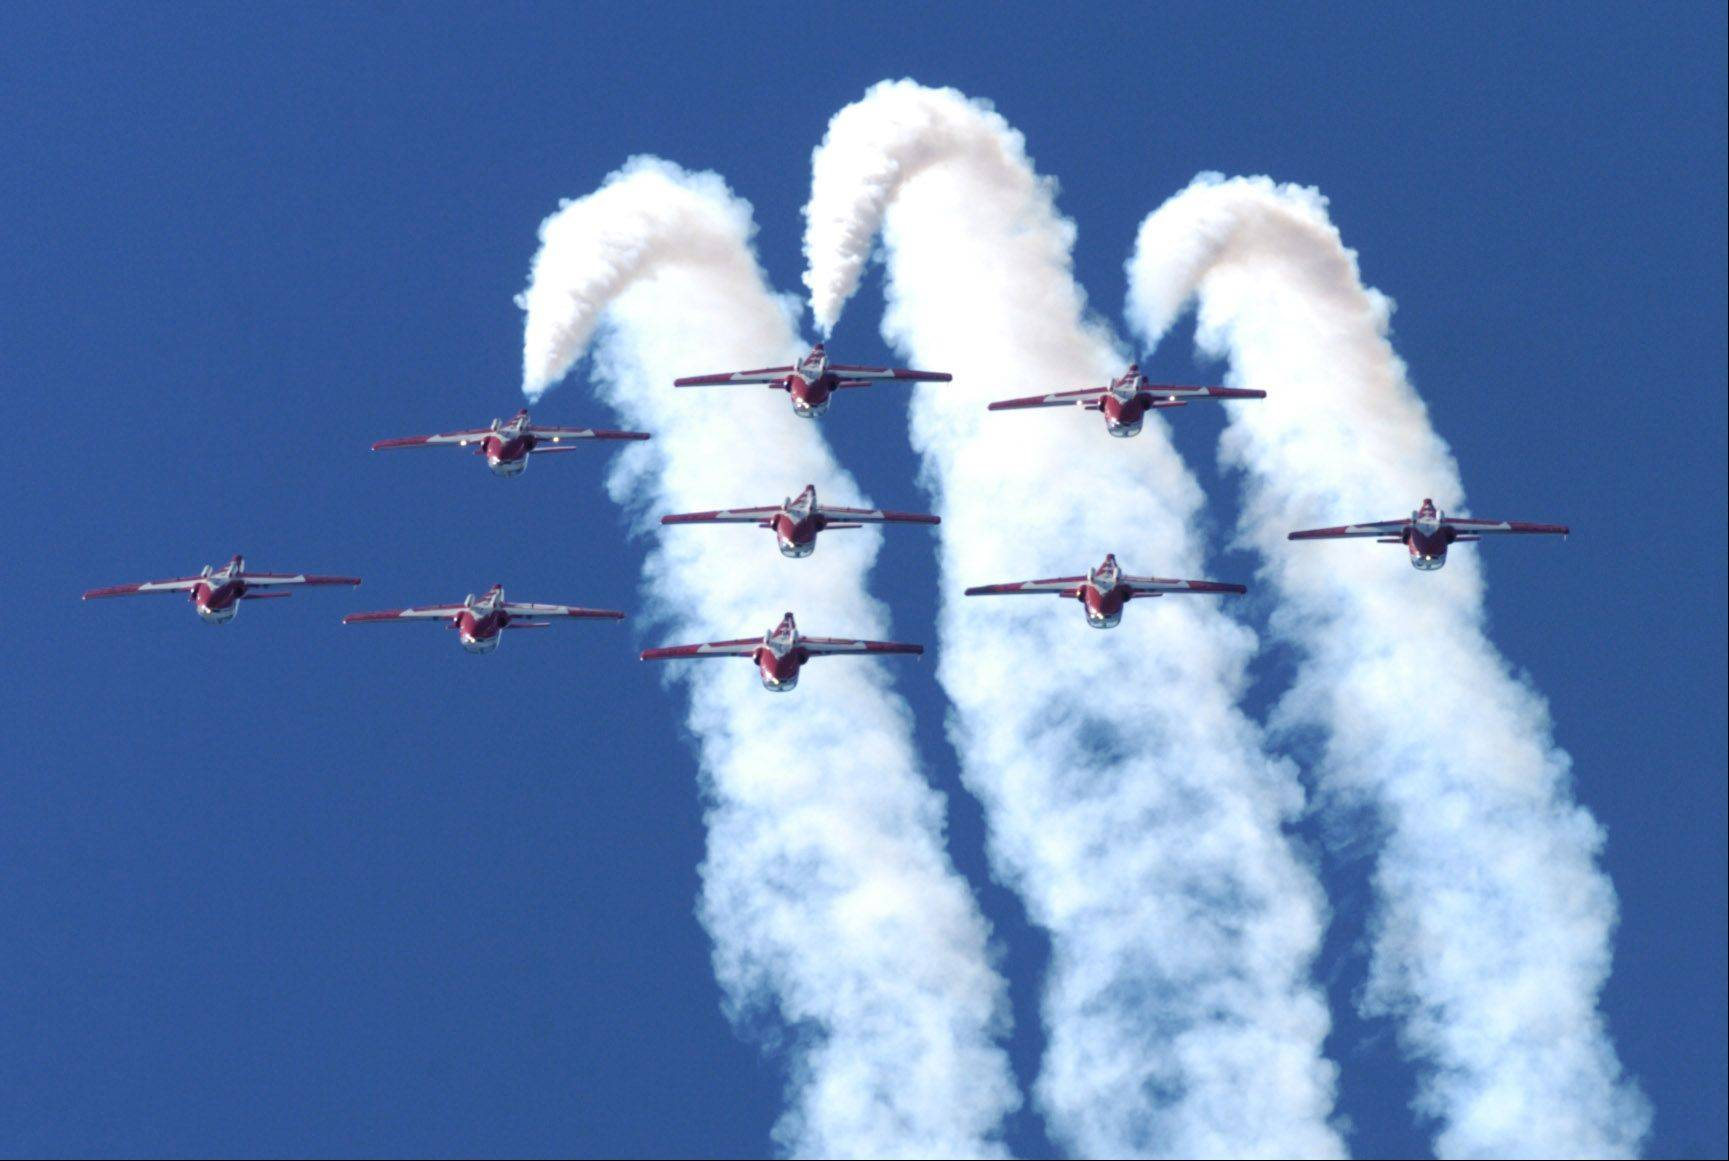 The Royal Canadian Air Force Snowbirds perform during the Waukegan Air Show at the Waukegan Airport Saturday.